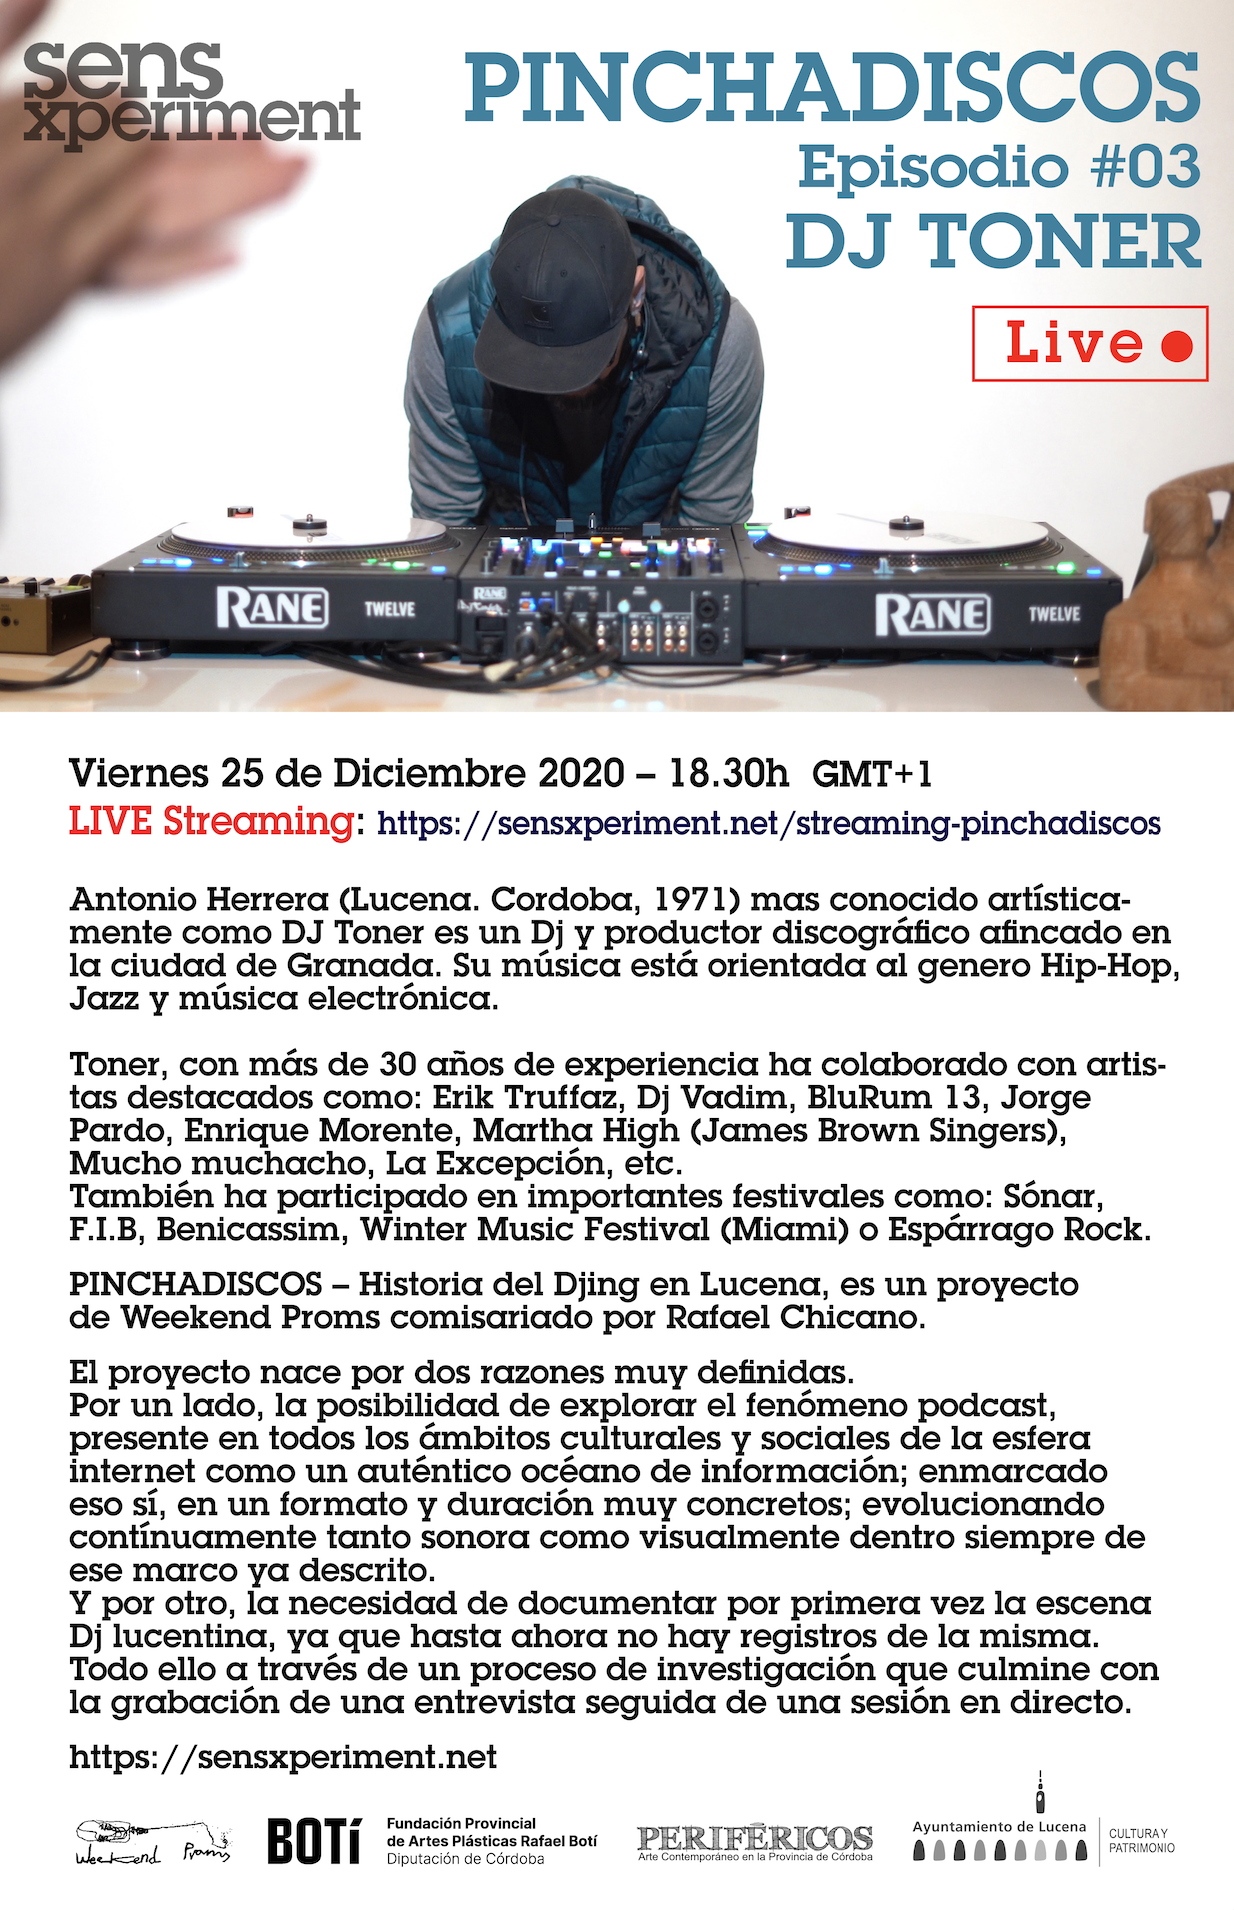 PINCHADISCOS episodio #3 DJ Toner @ live streaming